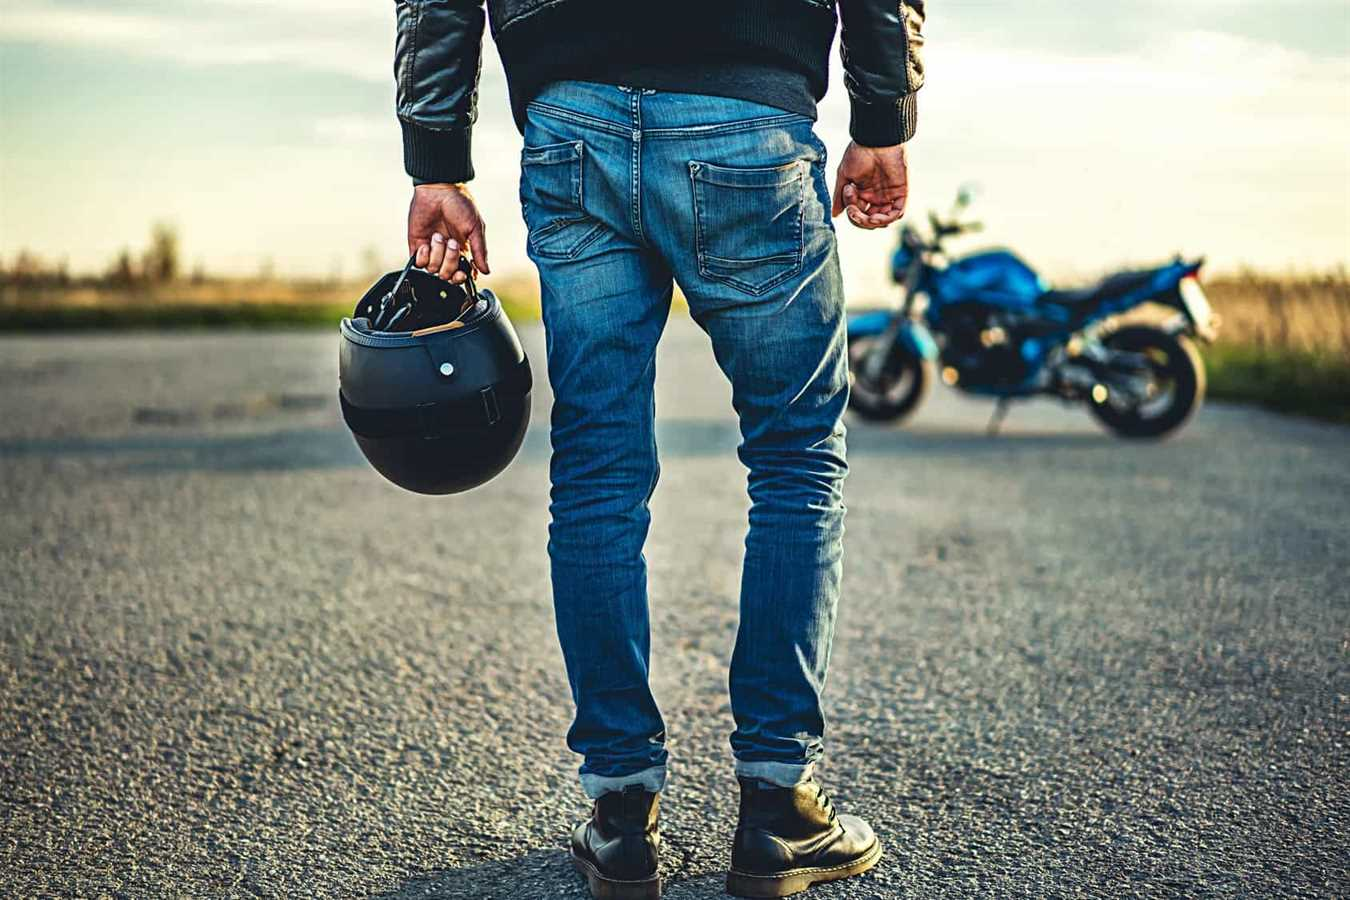 Does Not Wearing A Helmet Affect Your Motorcycle Accident Injury Case In Texas?